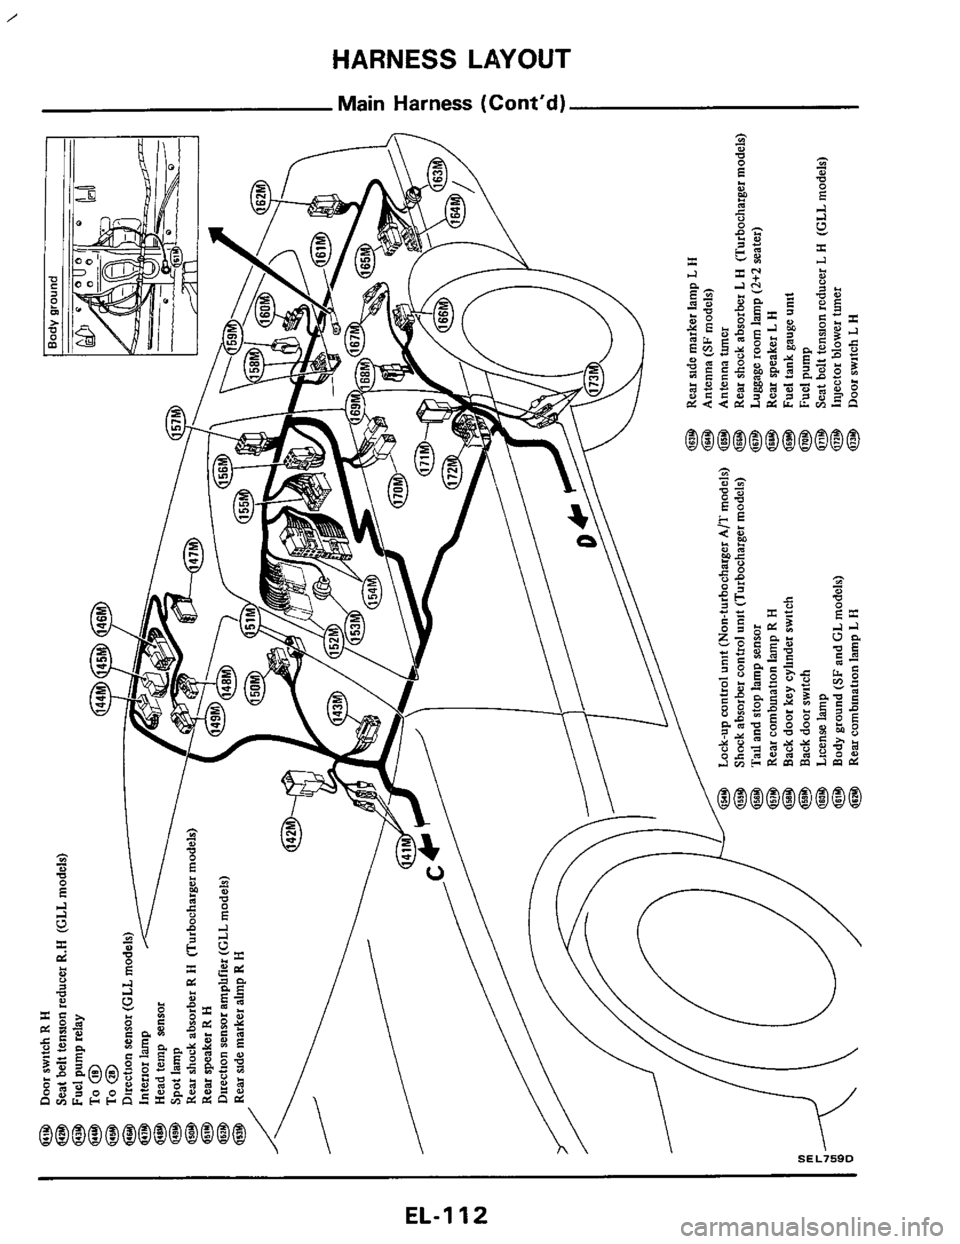 89 240sx Wiring Diagram further 2003 Nissan 350z Fuse Box Diagram together with Cl160 Wiring Diagram as well Nissan 300zx Dash Wiring Diagram furthermore Mazda B2000 Service Manual 87. on z31 stereo wiring diagram